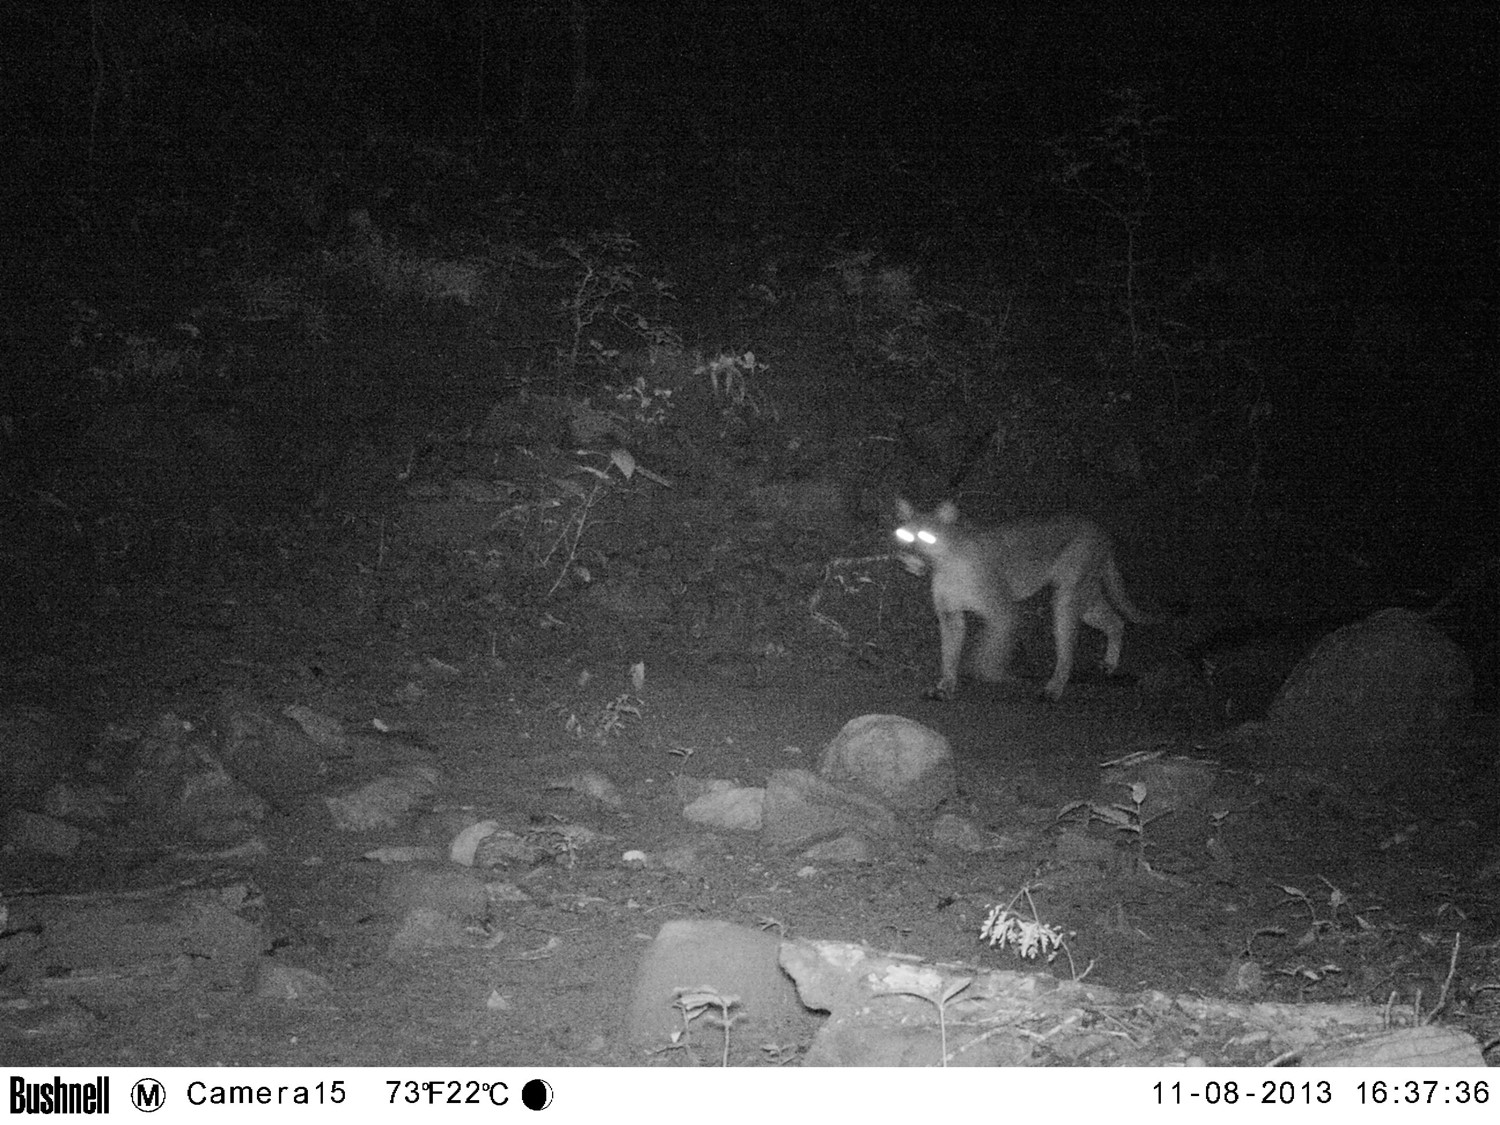 These photos were taken less than a week after we installed our camera traps, which provided a very positive start to our study/